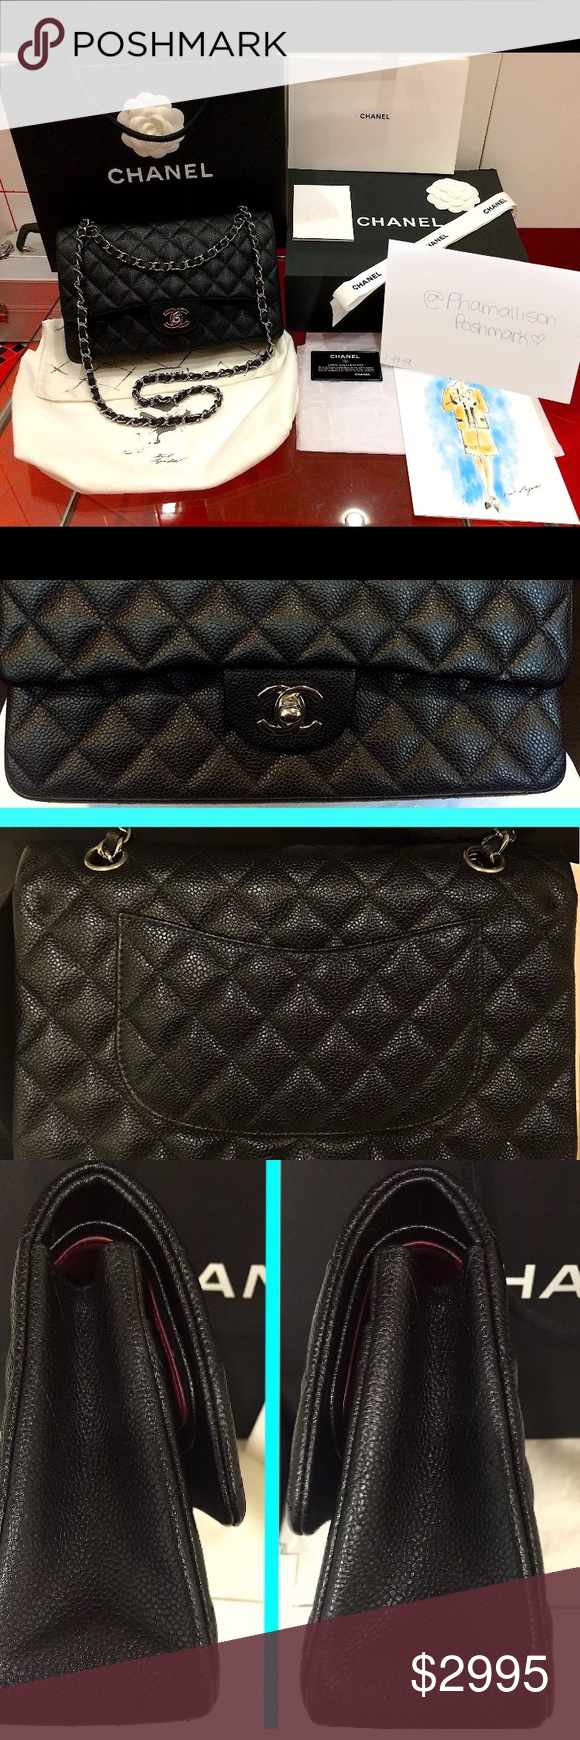 38de1e25963e44 Chanel 2.55 Caviar Double Flap Medium Pre-loved Authentic Chanel bag 2.55  classic timeless caviar